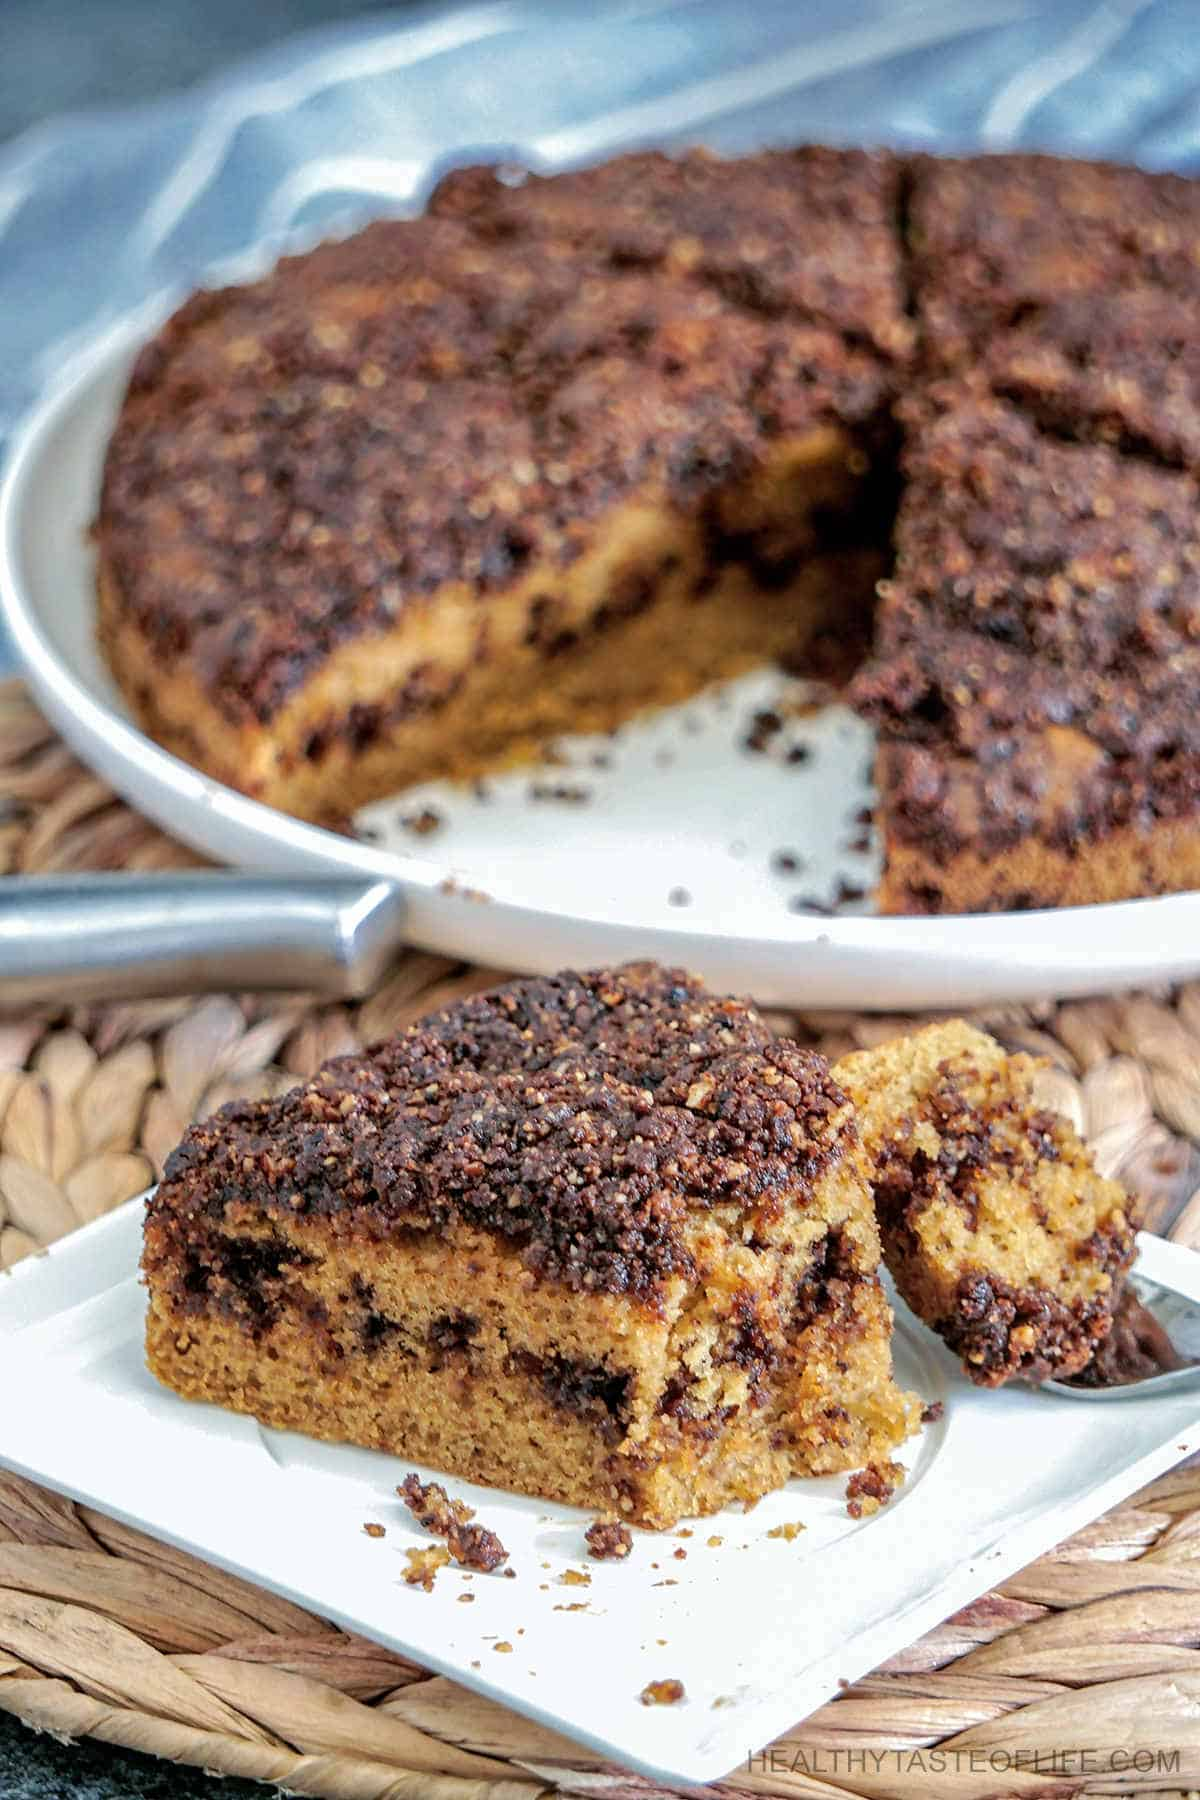 A soft gluten free coffee cake with coffee, cinnamon and walnut topping (streusel) and middle layer. This easy cinnamon streusel coffee cake is ready in 1 hour and tastes great for several days, freezer friendly too. #glutenfreecoffeecake #easy #healthy #coffeecake #glutenfree